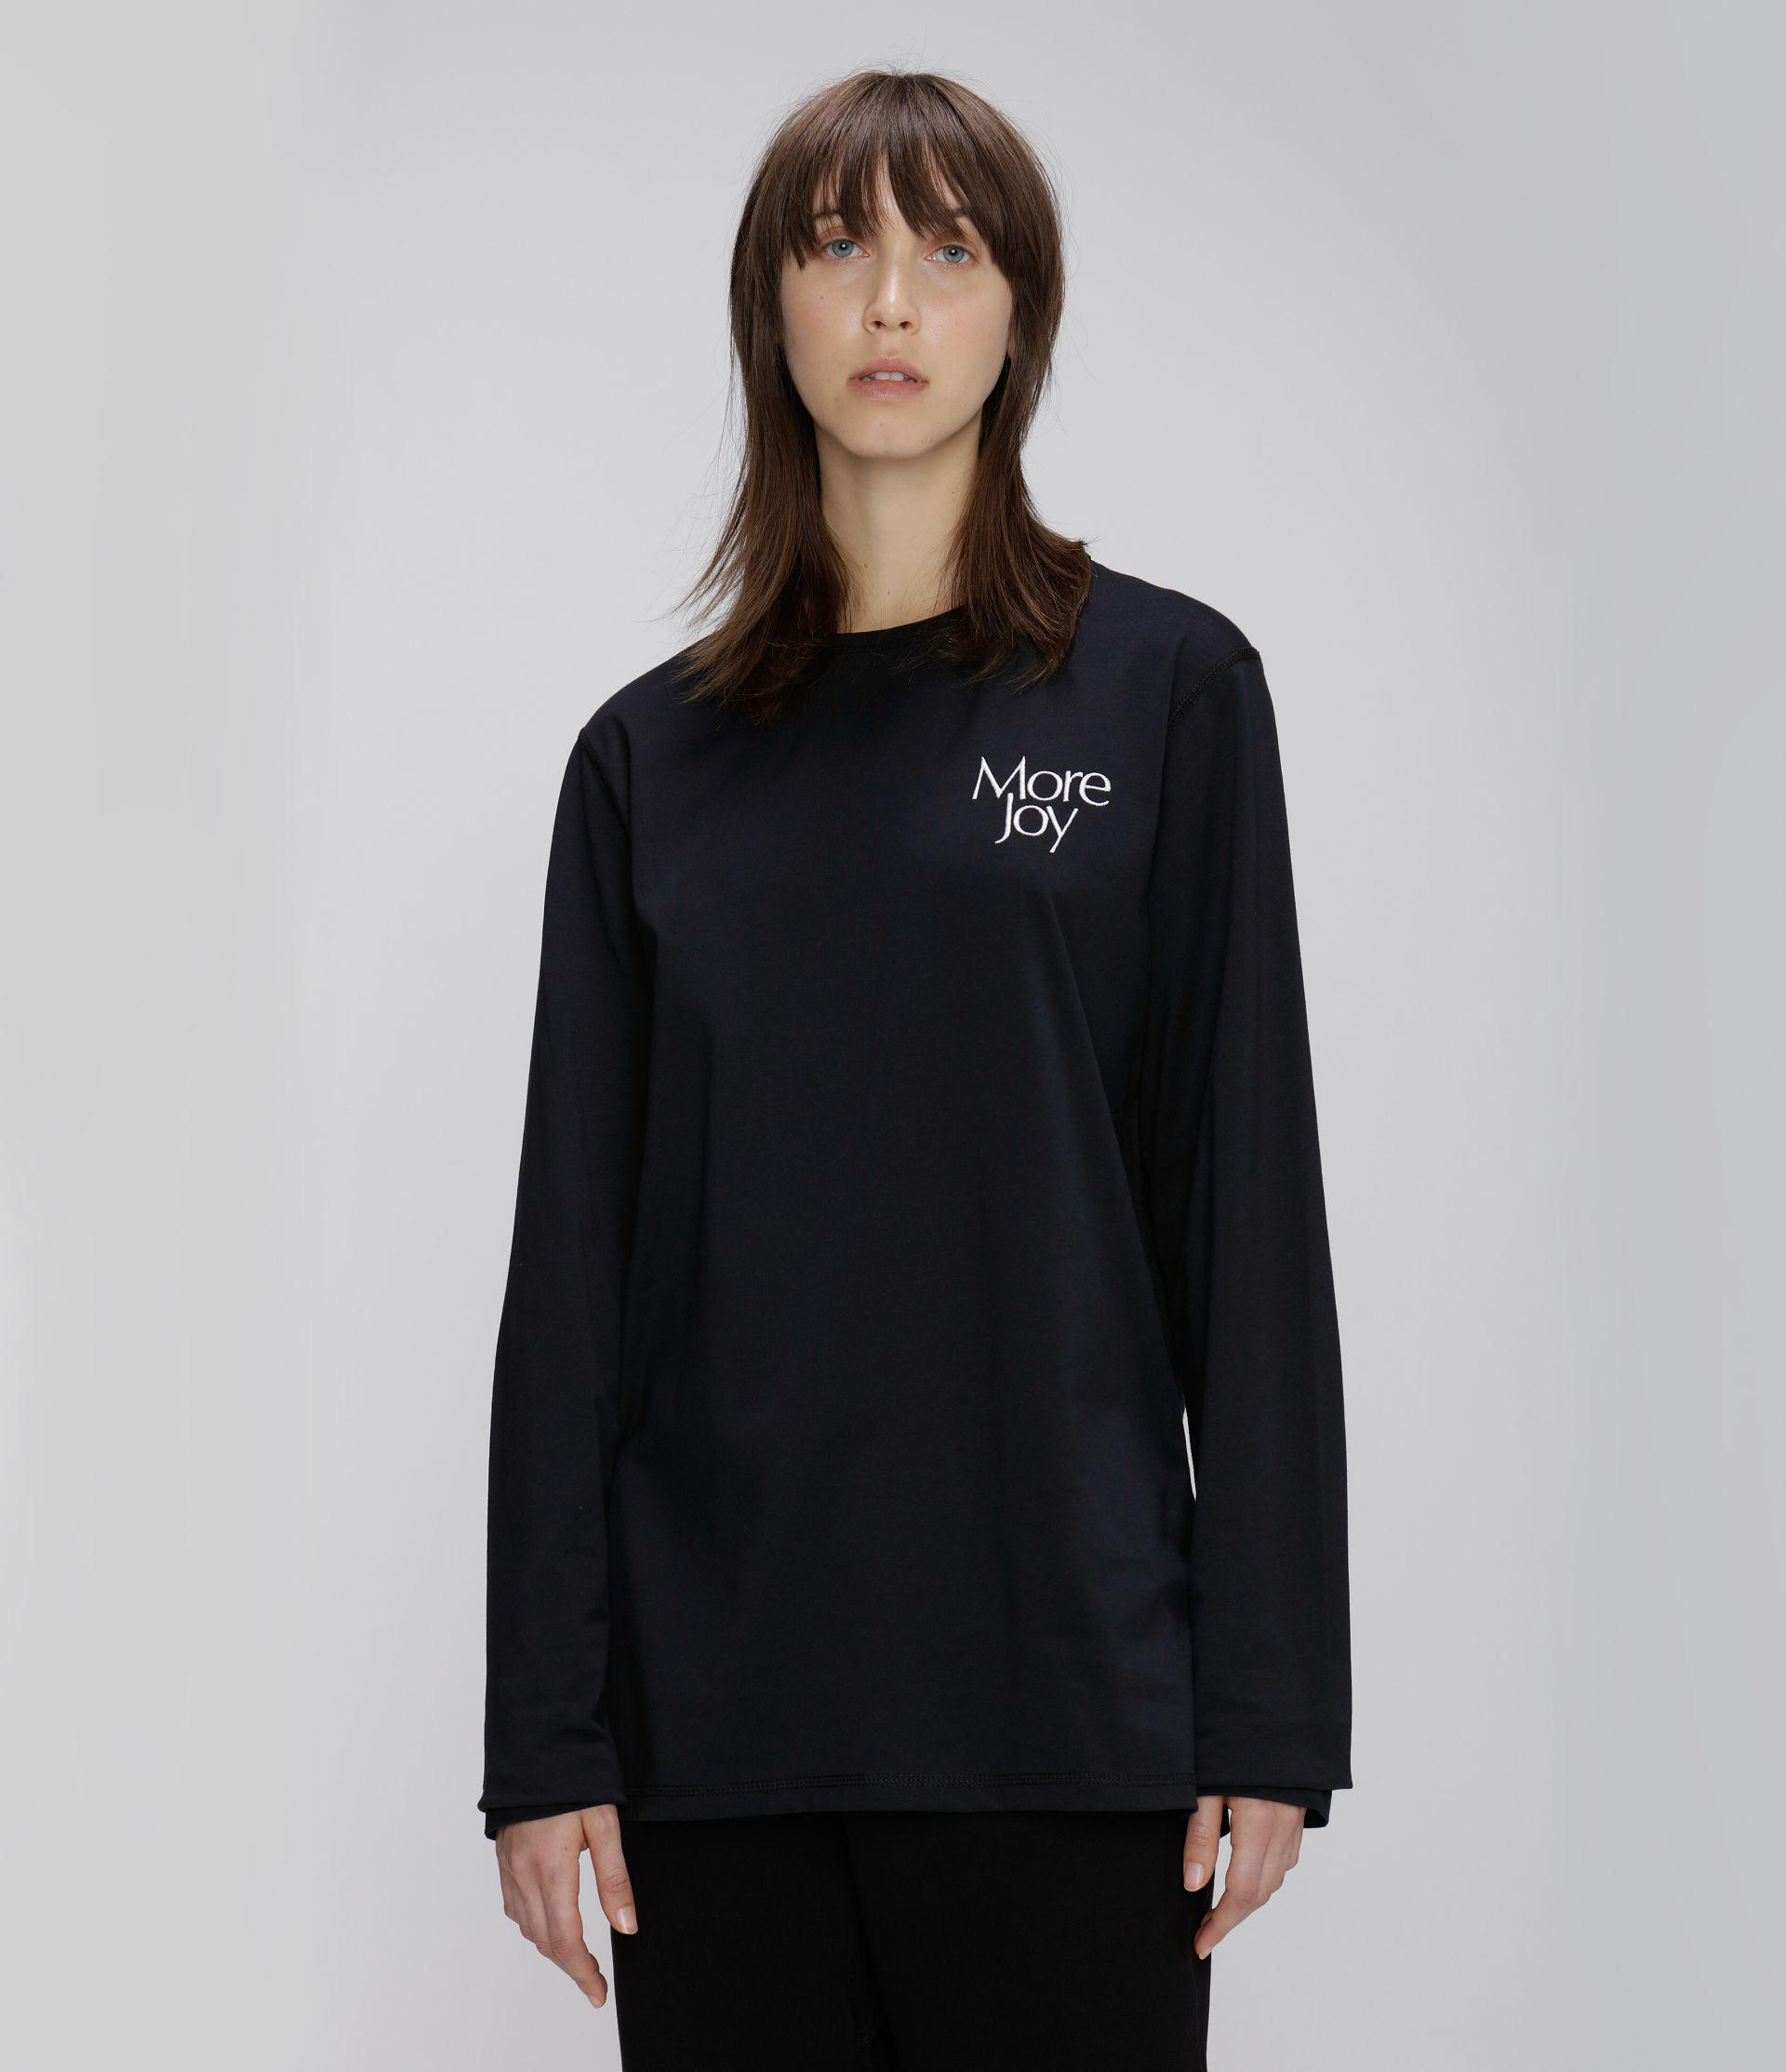 More Joy embroidered long sleeve t-shirt